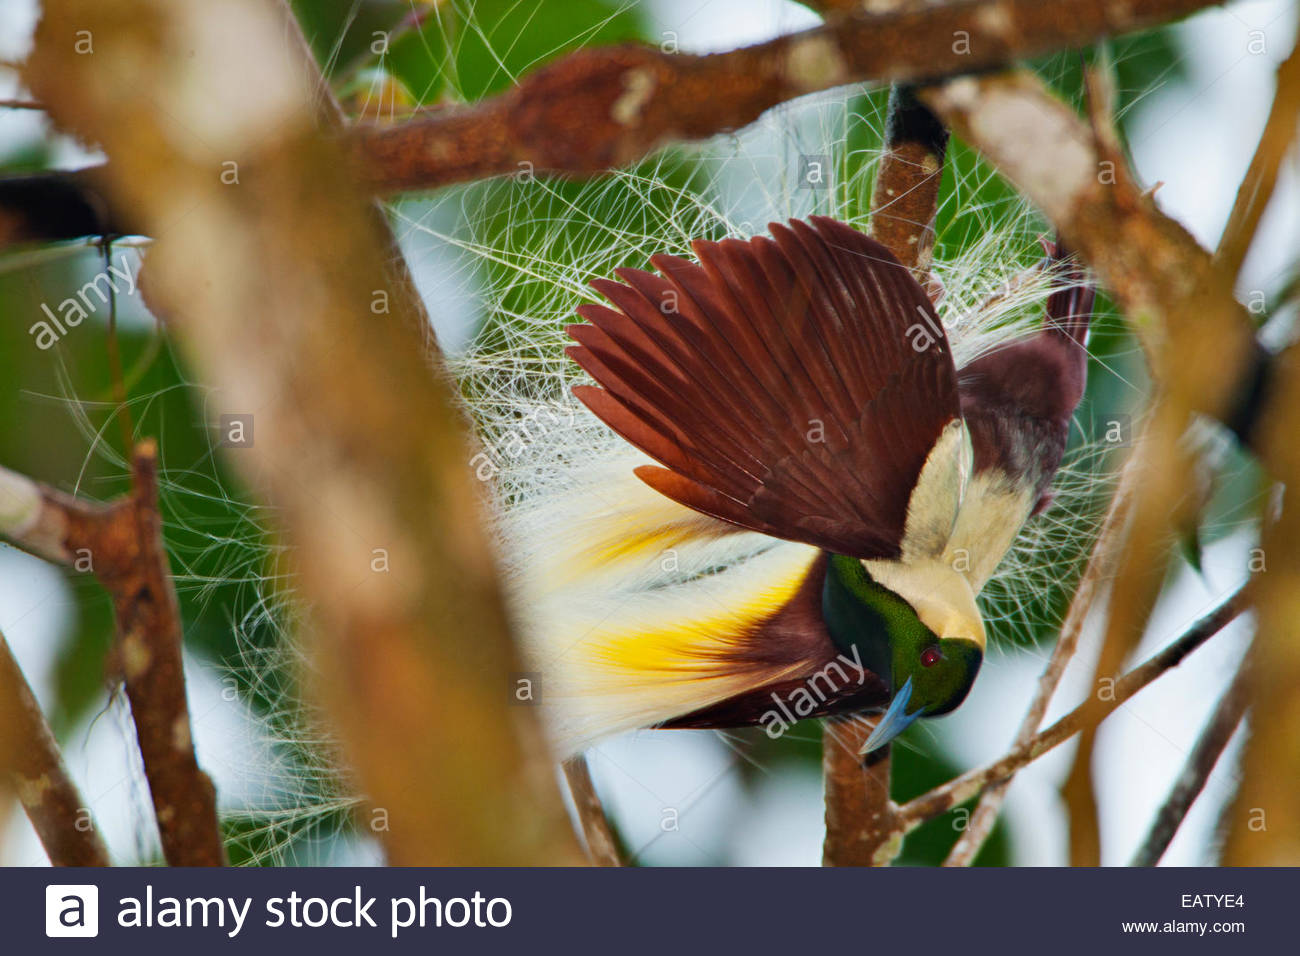 A male emperor bird of paradise hangs upside down and spreads his plumes to show females watching from above. - Stock Image